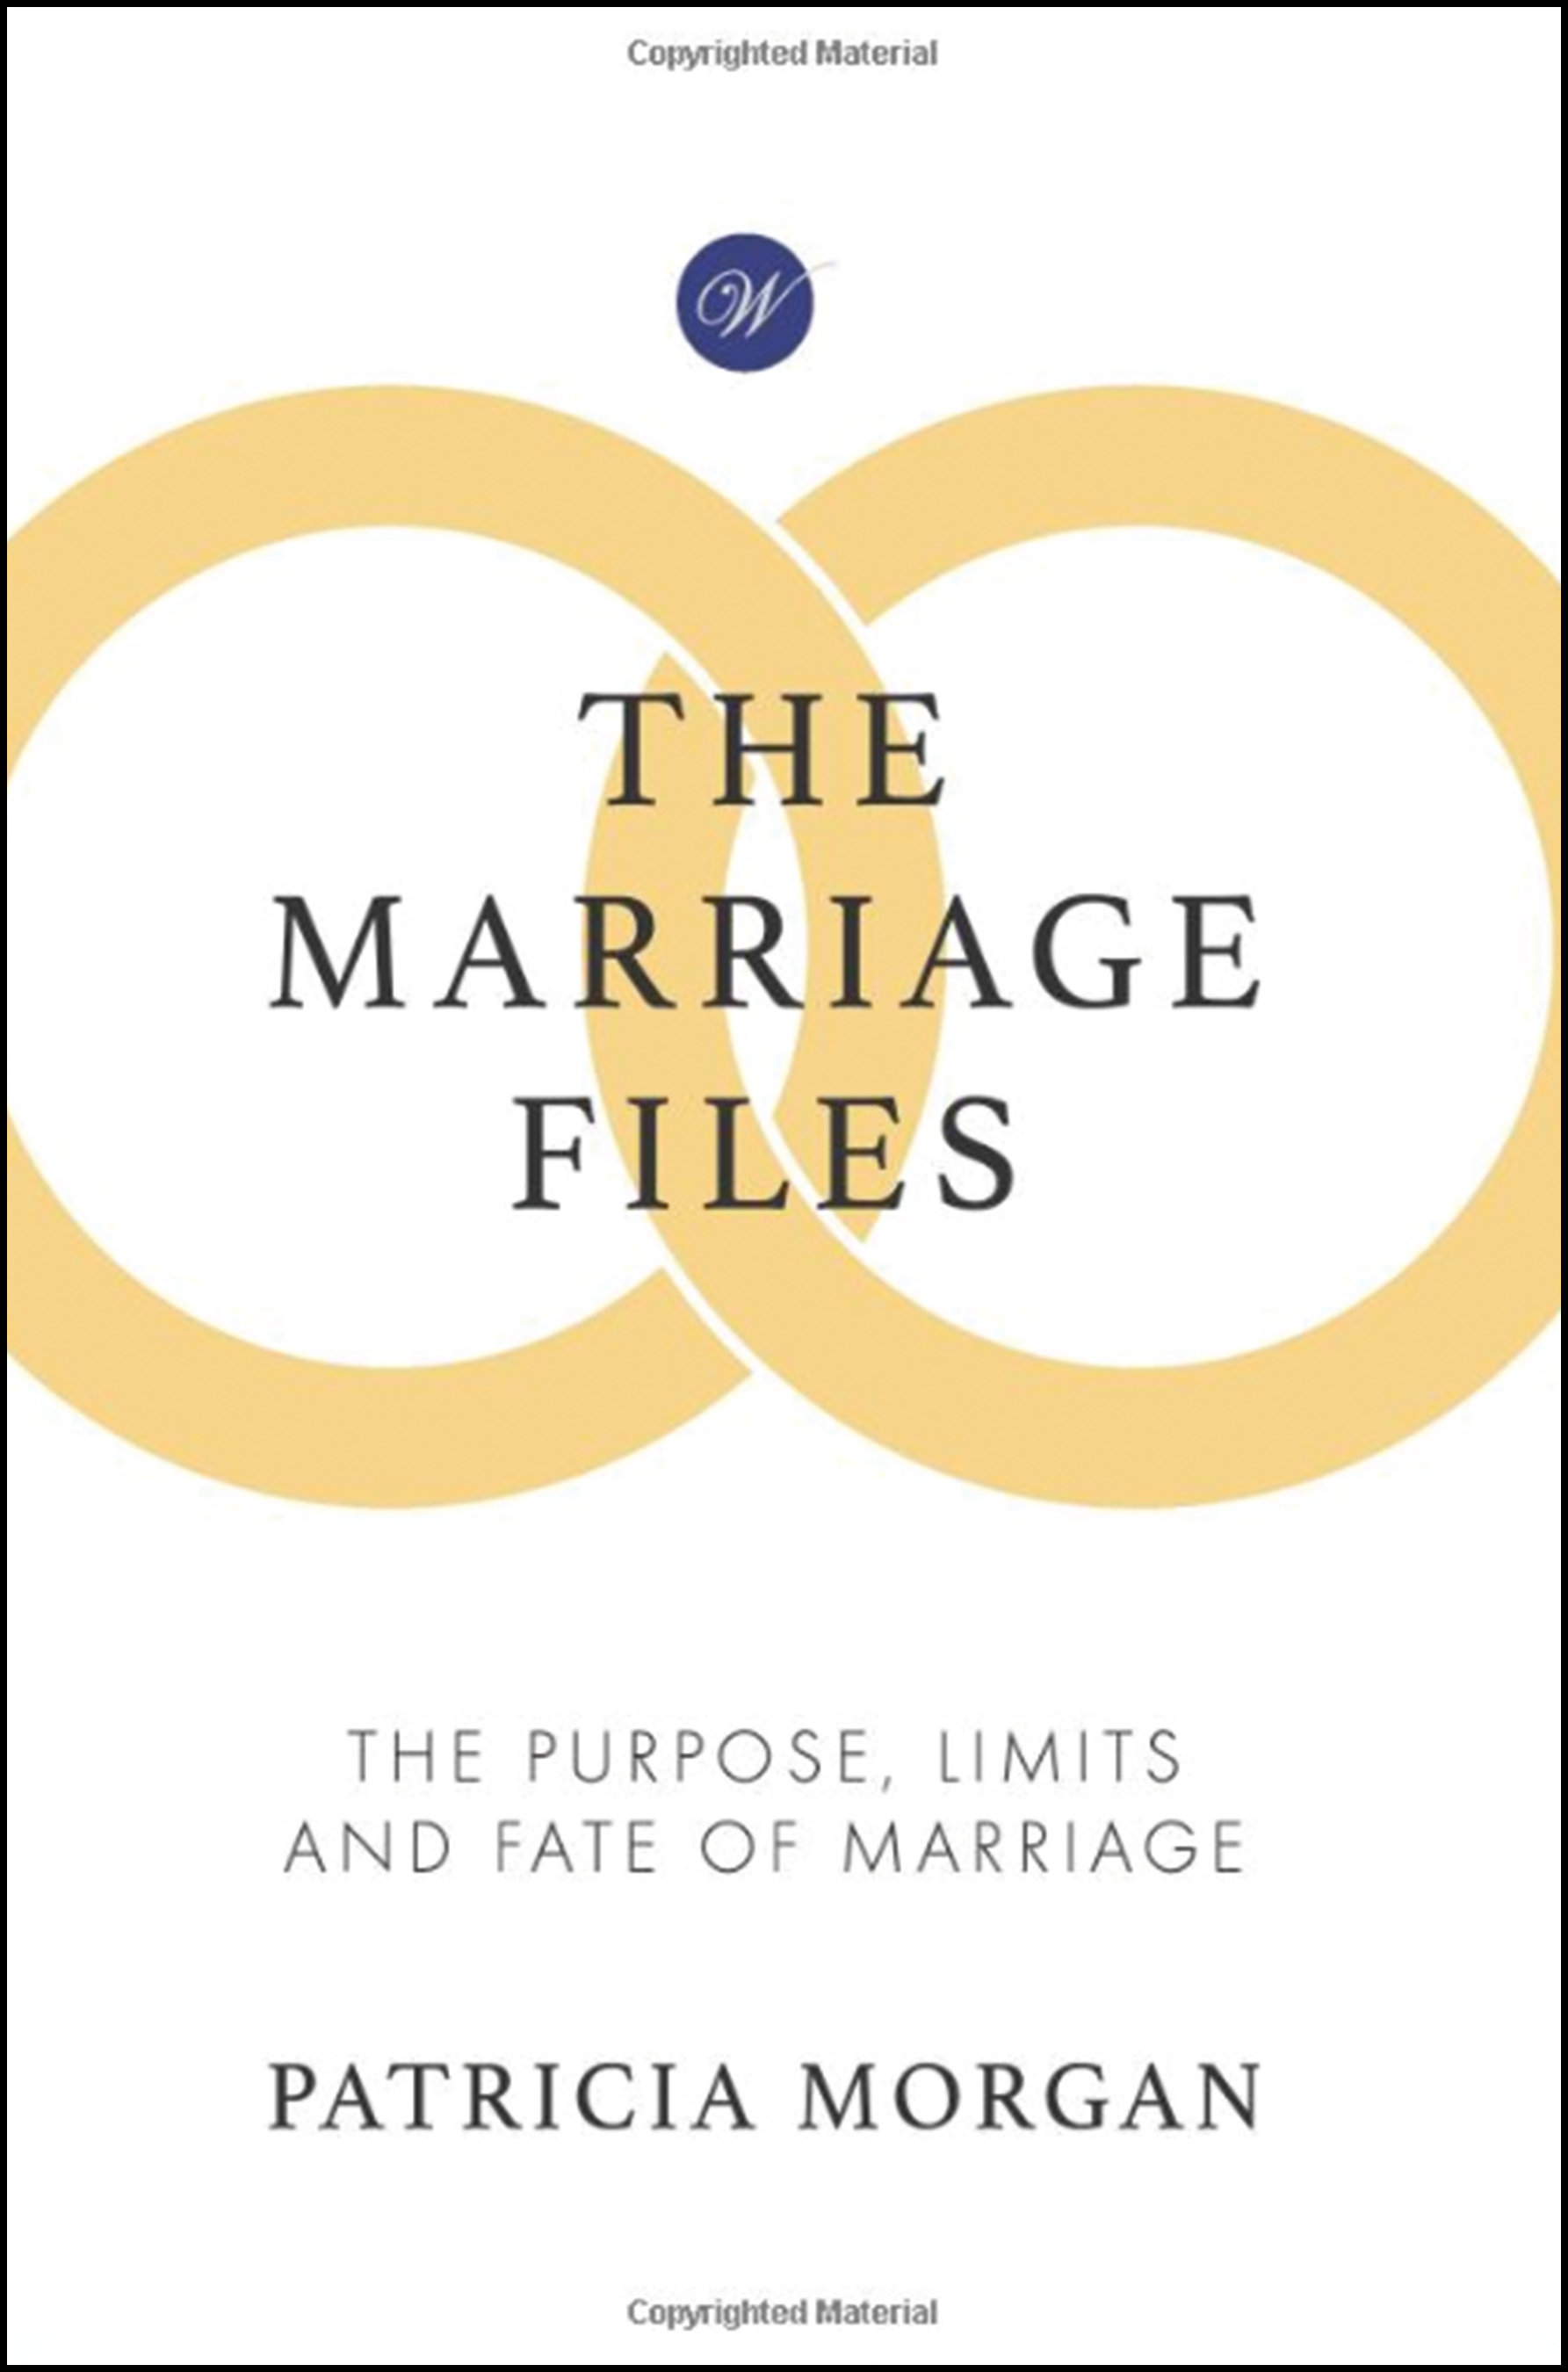 The Marriage Files